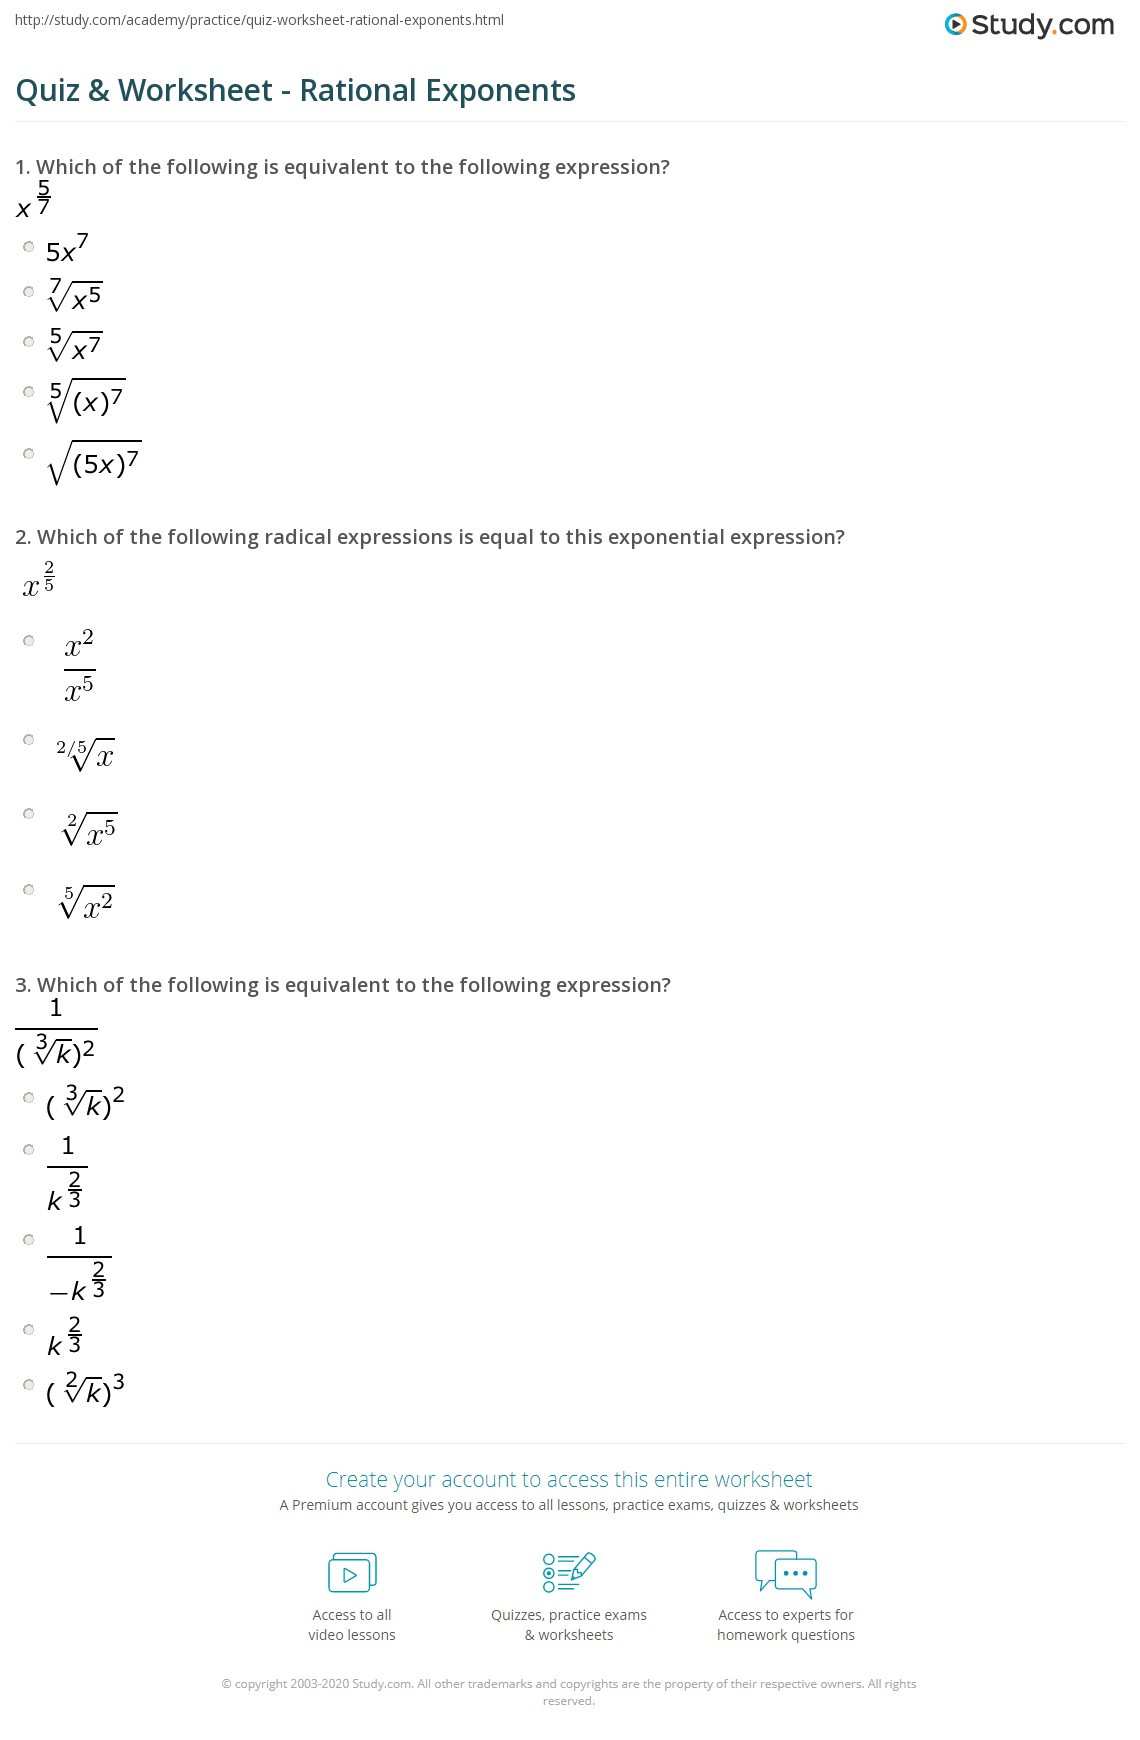 Radicals and Rational Exponents Worksheet Quiz & Worksheet Rational Exponents